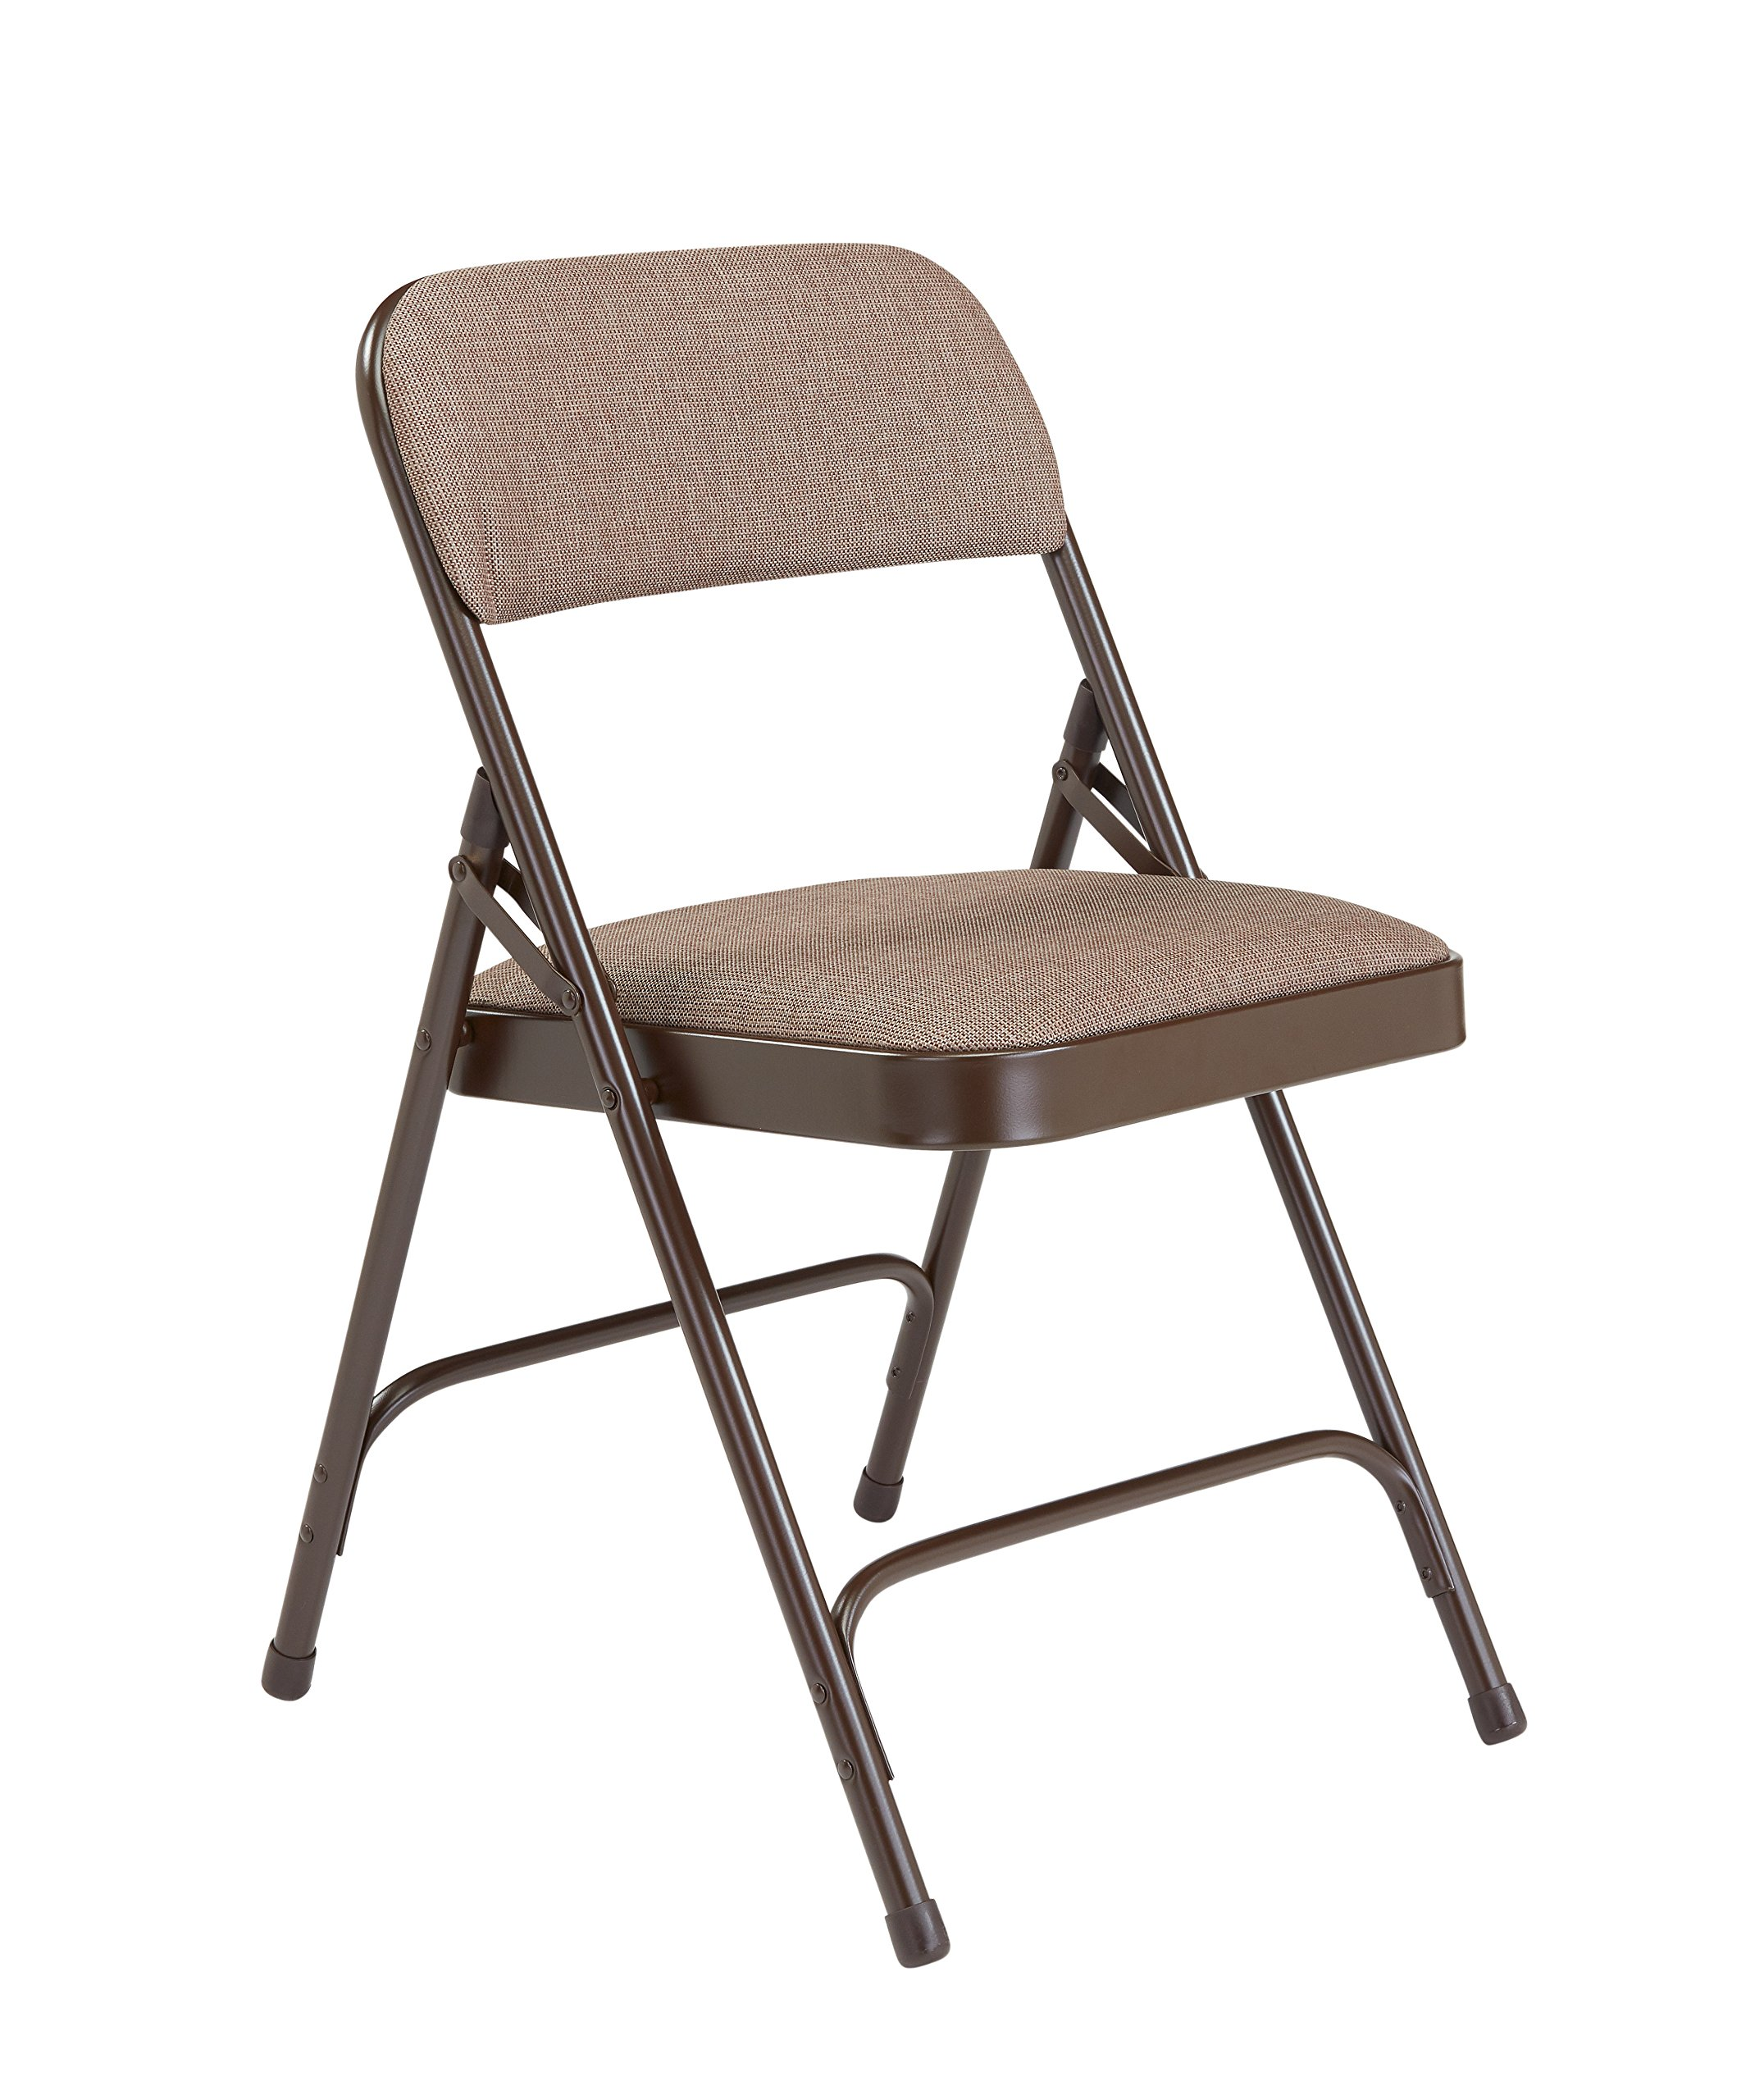 National Public Seating 2200 Series Steel Frame Upholstered Premium Fabric Seat and Back Folding Chair with Double Brace, 480 lbs Capacity, Russet Walnut/Brown (Carton of 4) by National Public Seating